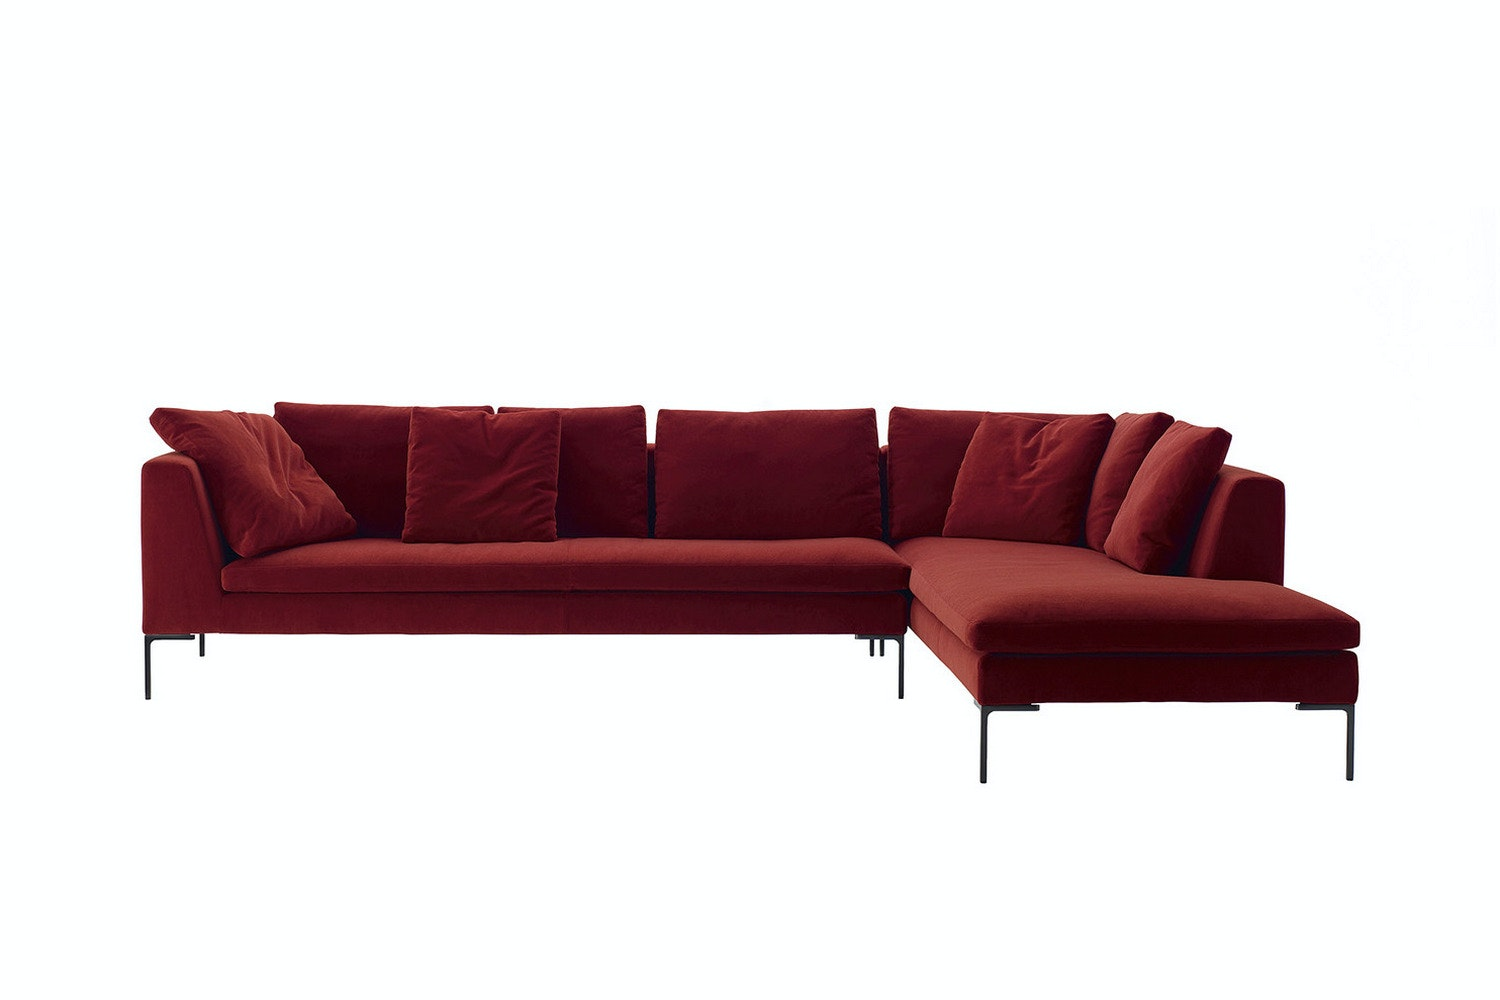 Charles Sofa with Right Chaise - Fabric by Antonio Citterio for B&B Italia